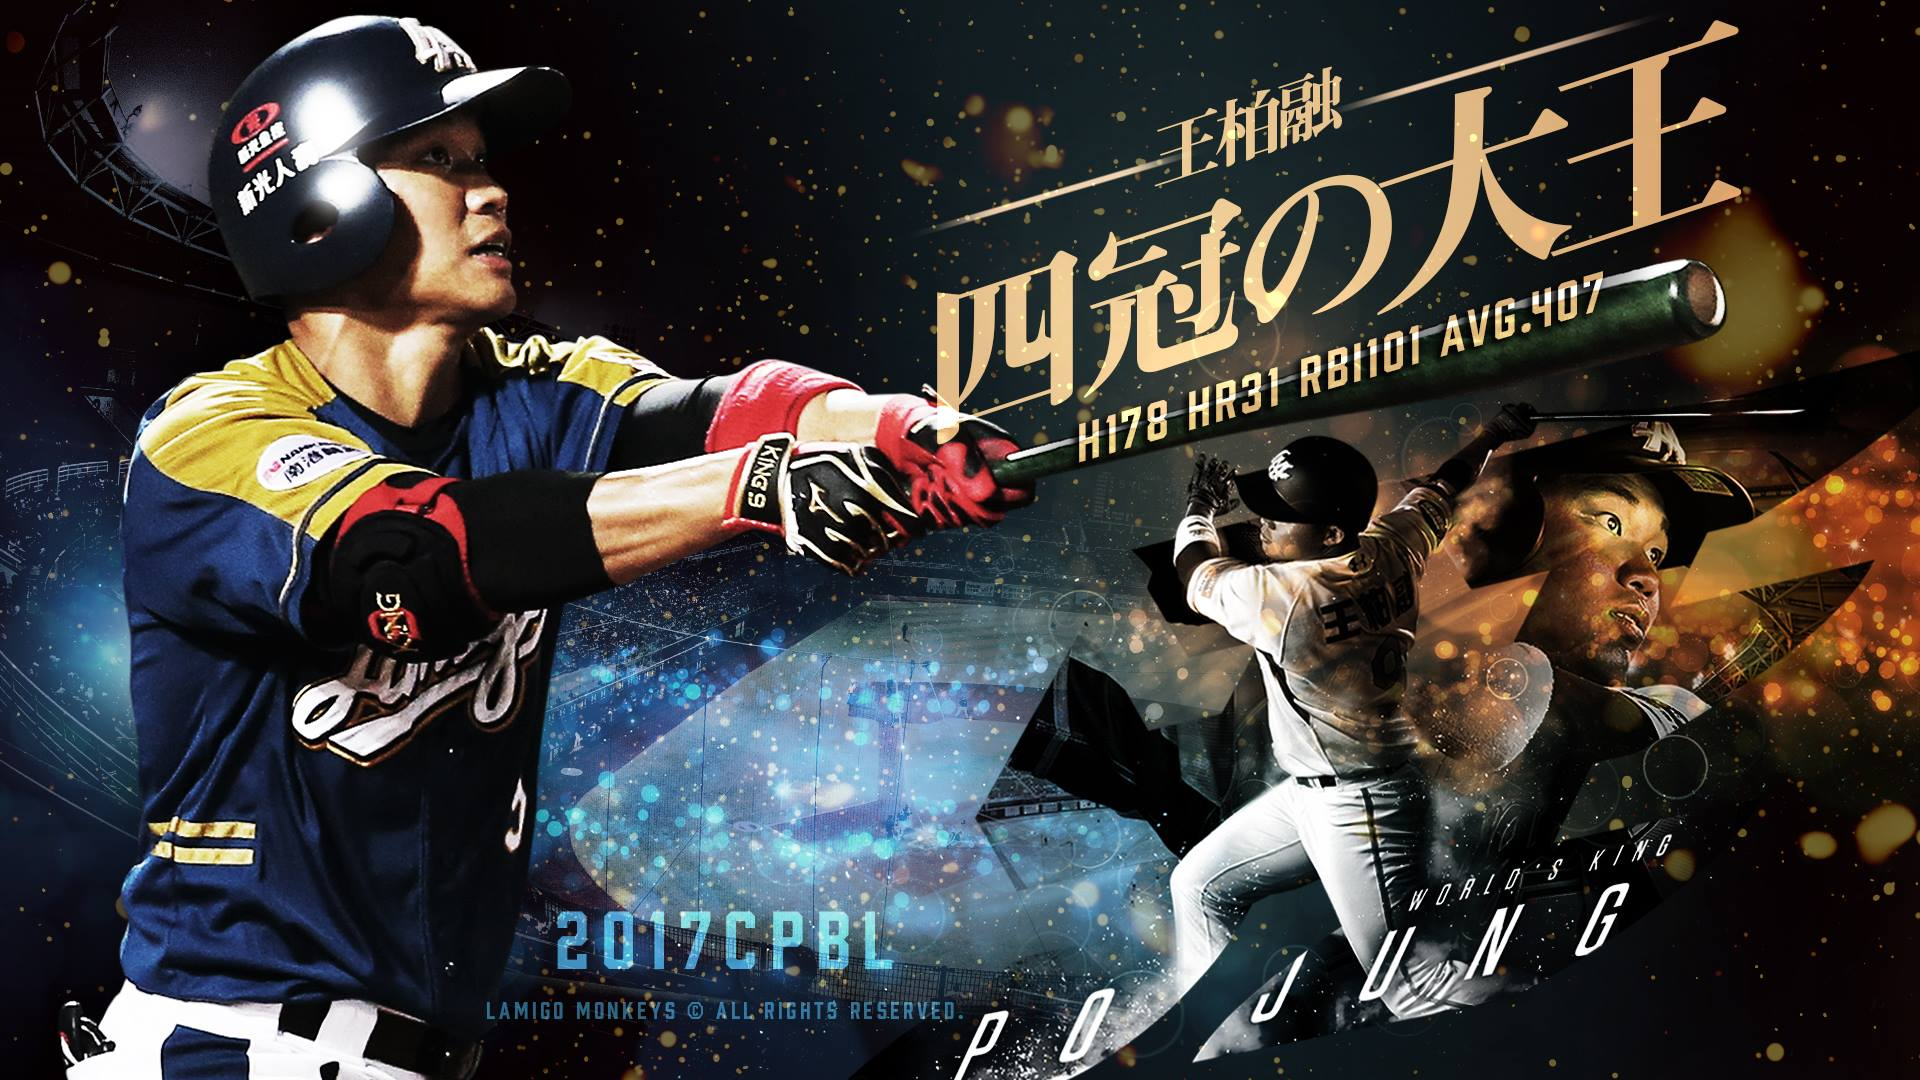 Meet your 2017 CPBL Quadruple Crown Winner Wang Po-Jung